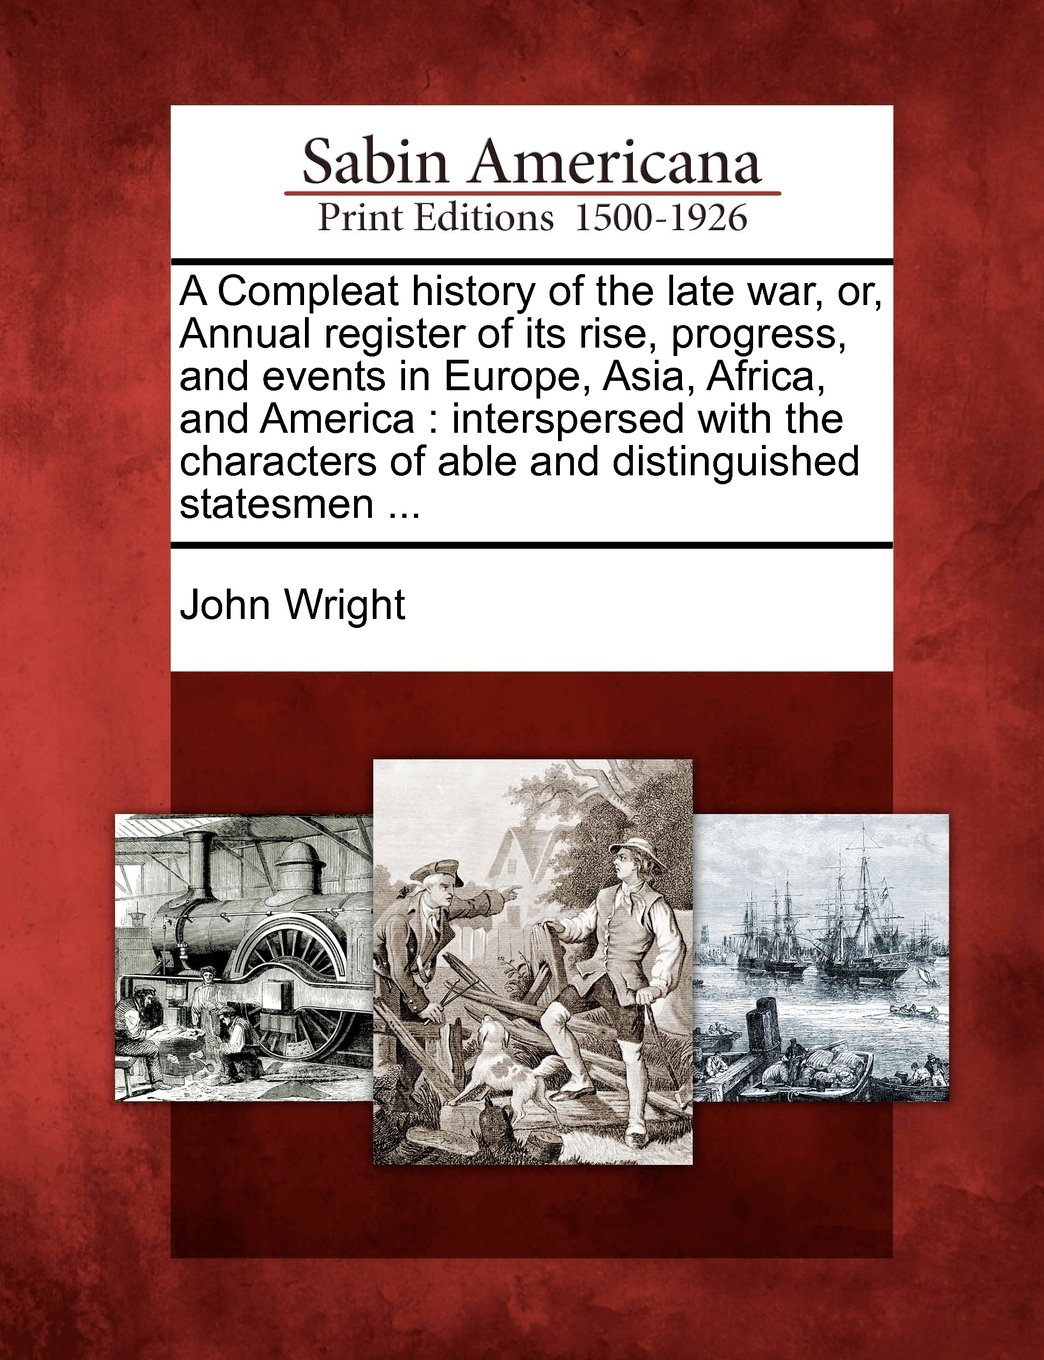 A Compleat history of the late war, or, Annual register of its rise, progress, and events in Europe, Asia, Africa, and America: interspersed with the characters of able and distinguished statesmen ... ebook